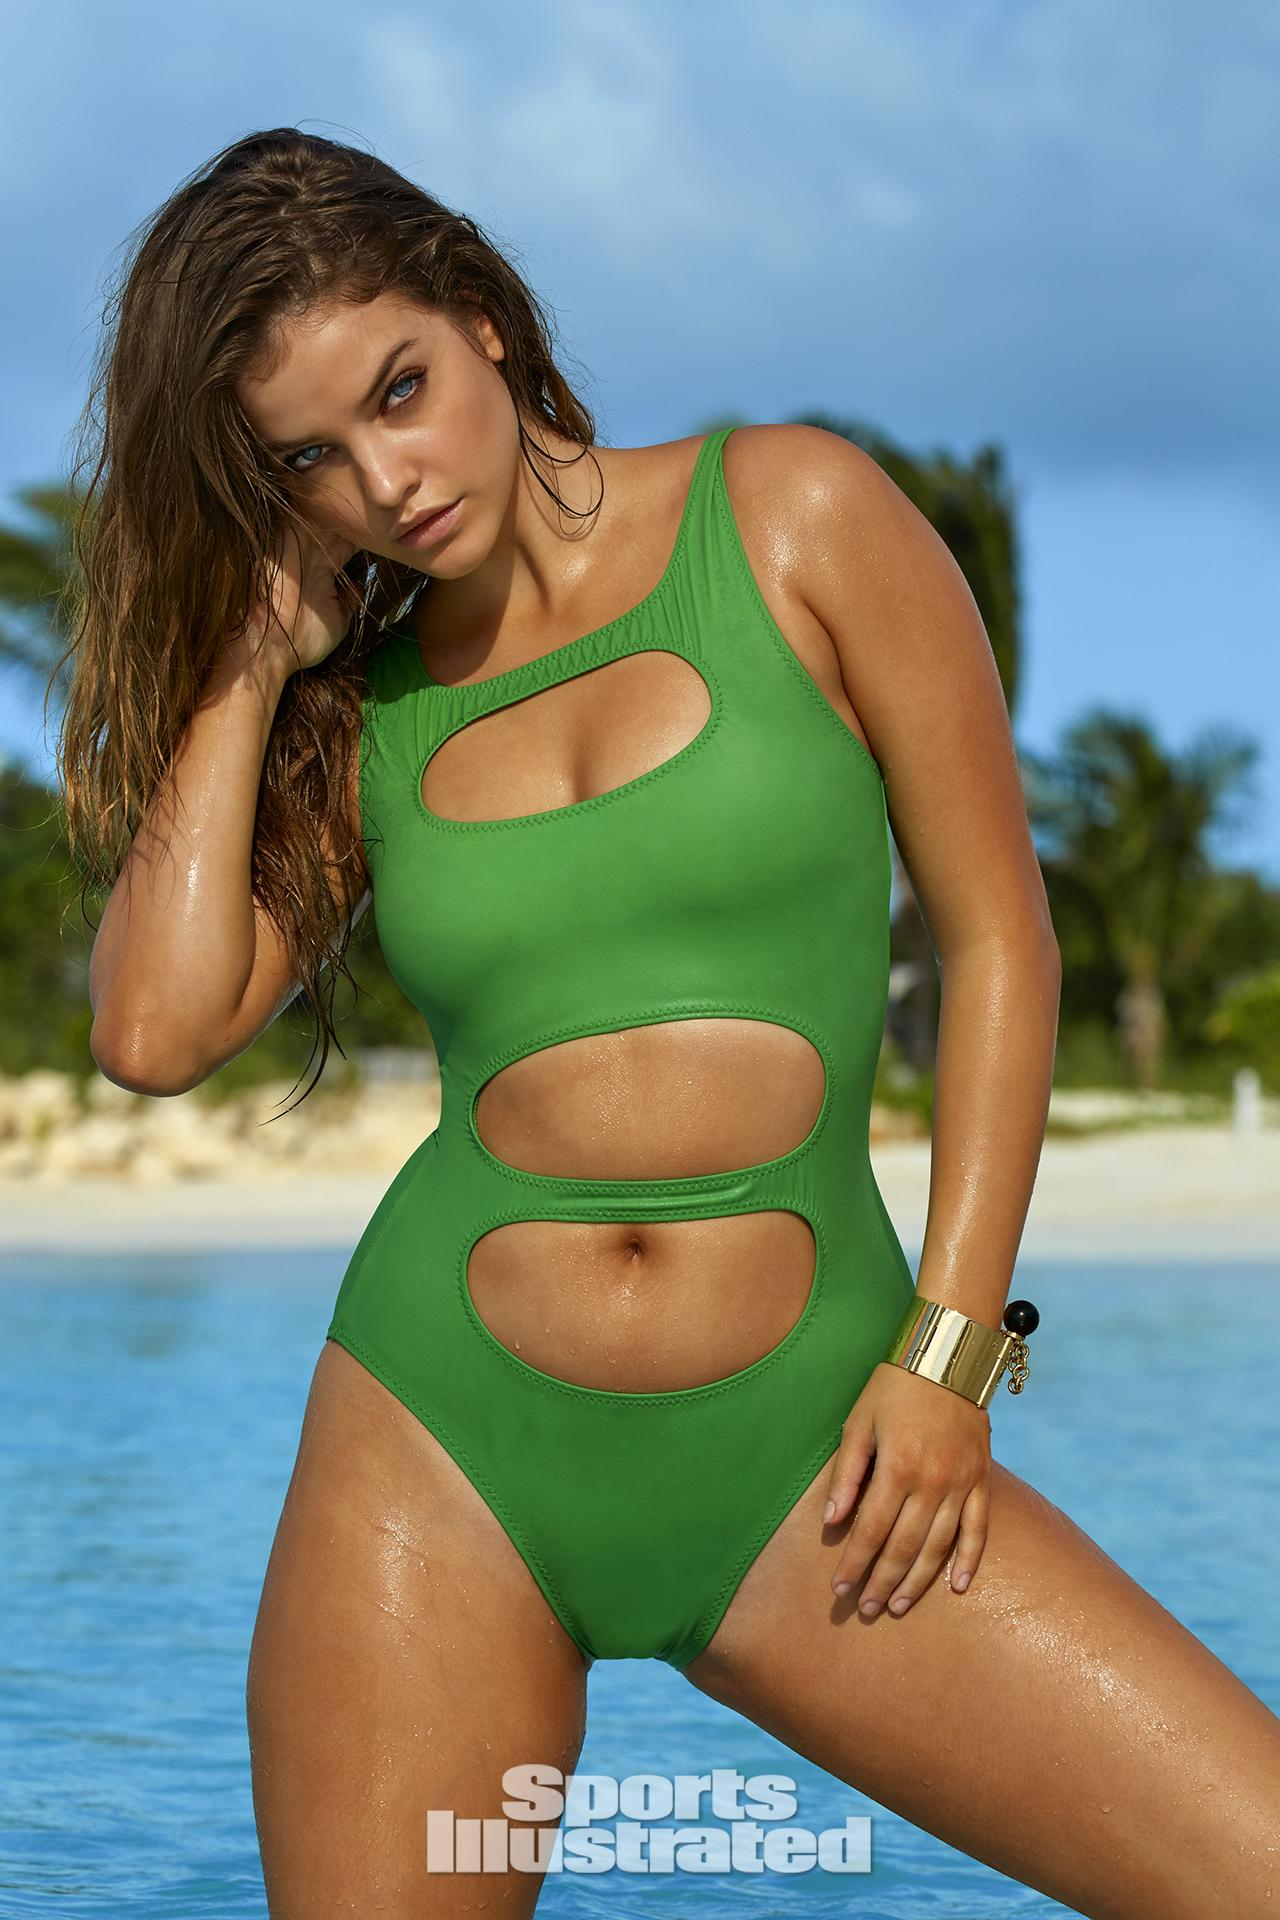 Barbara Palvin was photographed by James Macari in Turks & Caicos. Swimsuit by Norma Kamali.